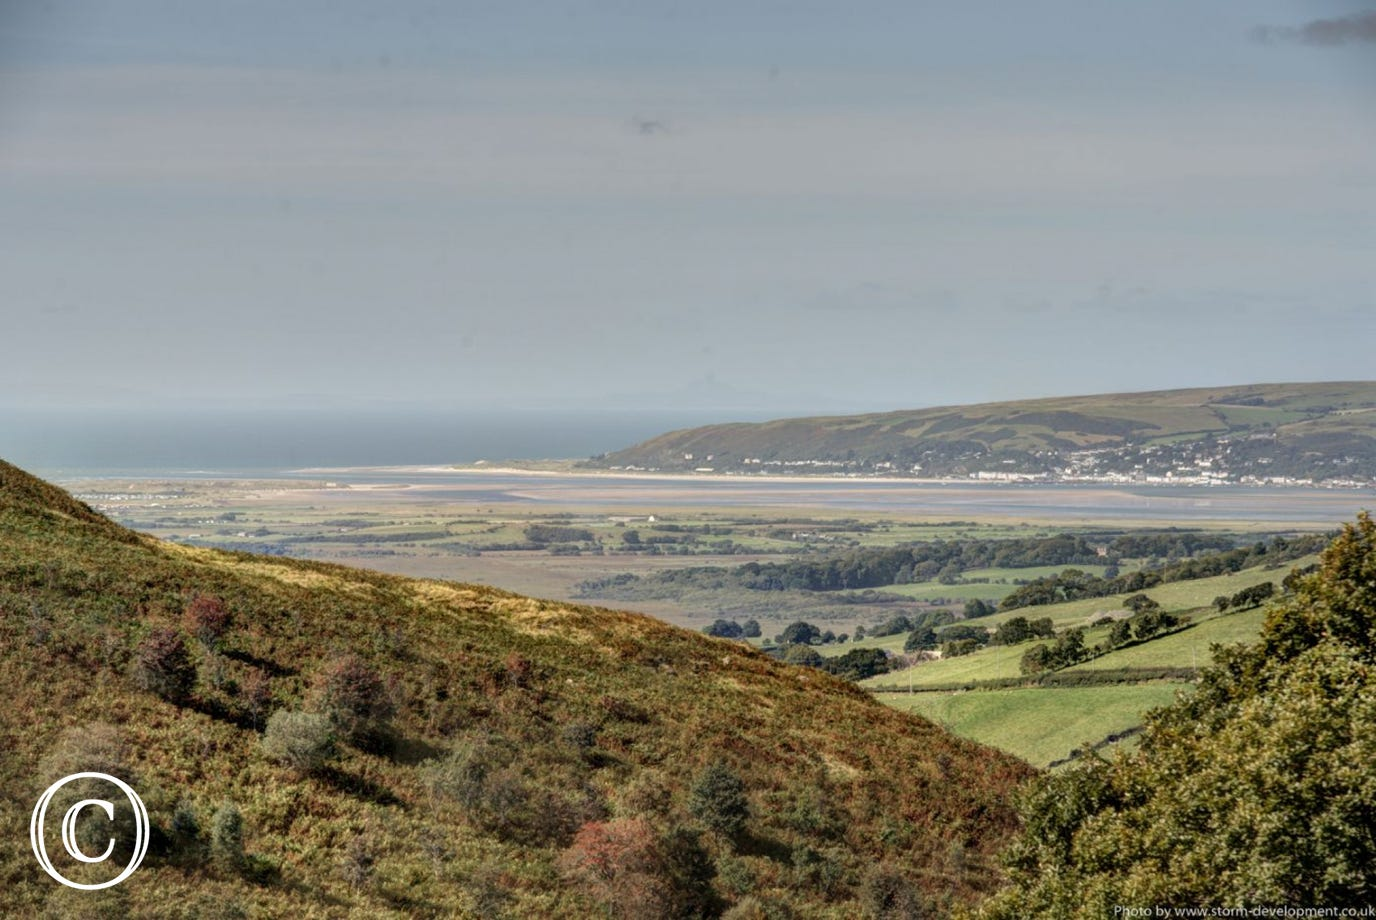 Beautiful view towards Ynys Las and Aberdyfi on the other side of the estuary. Photo by Storm Development